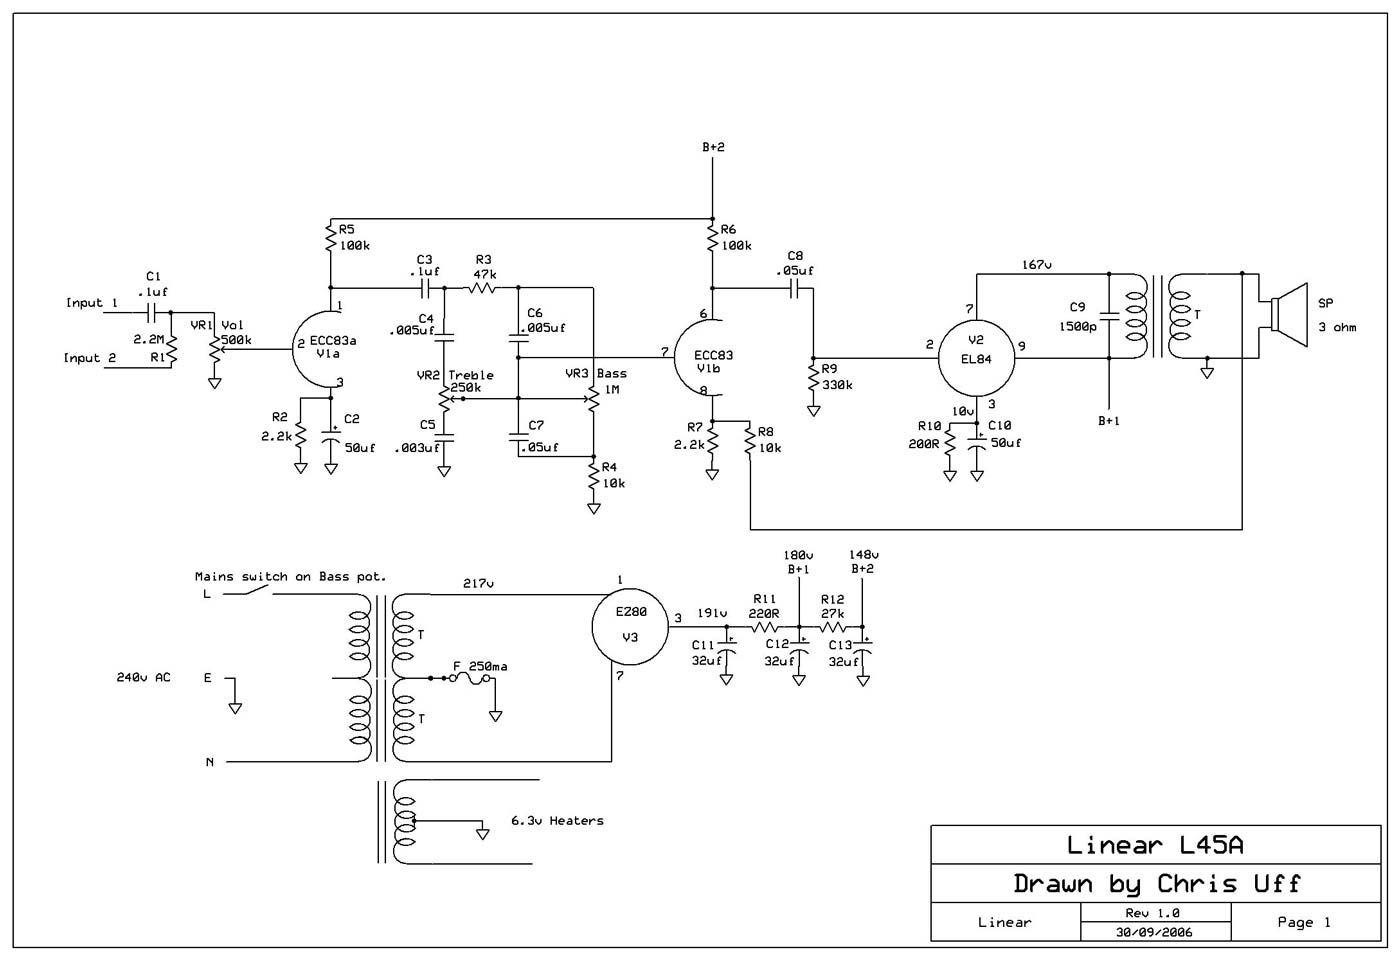 Linear Conchord L45a Schematic Diagram